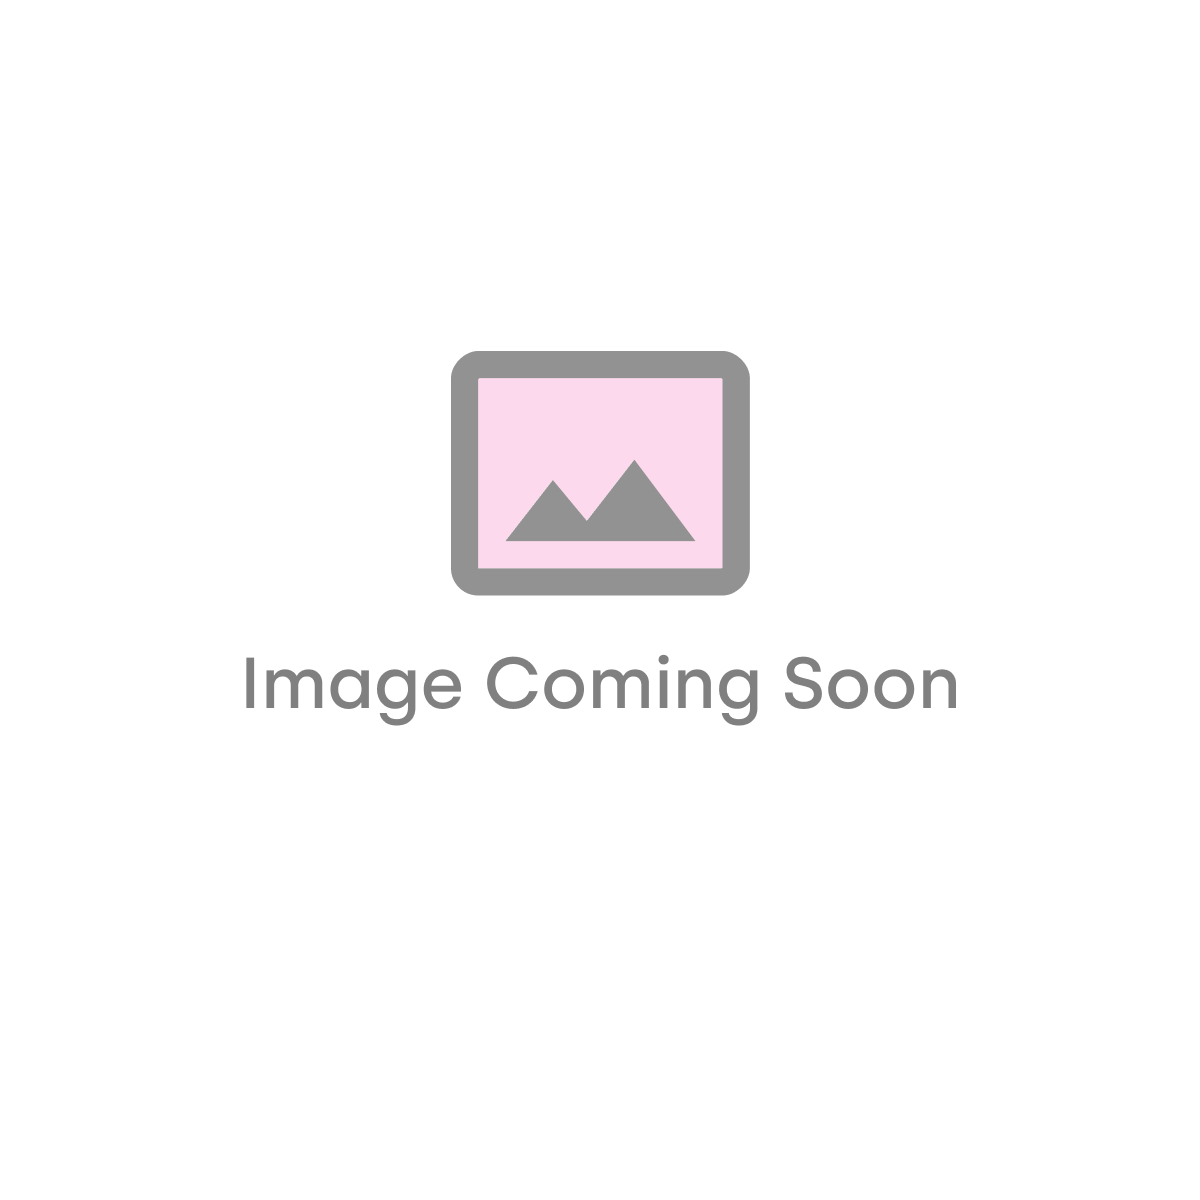 Forum Spa SPA-30993-CHR Cali Picture Wall Light - 17312